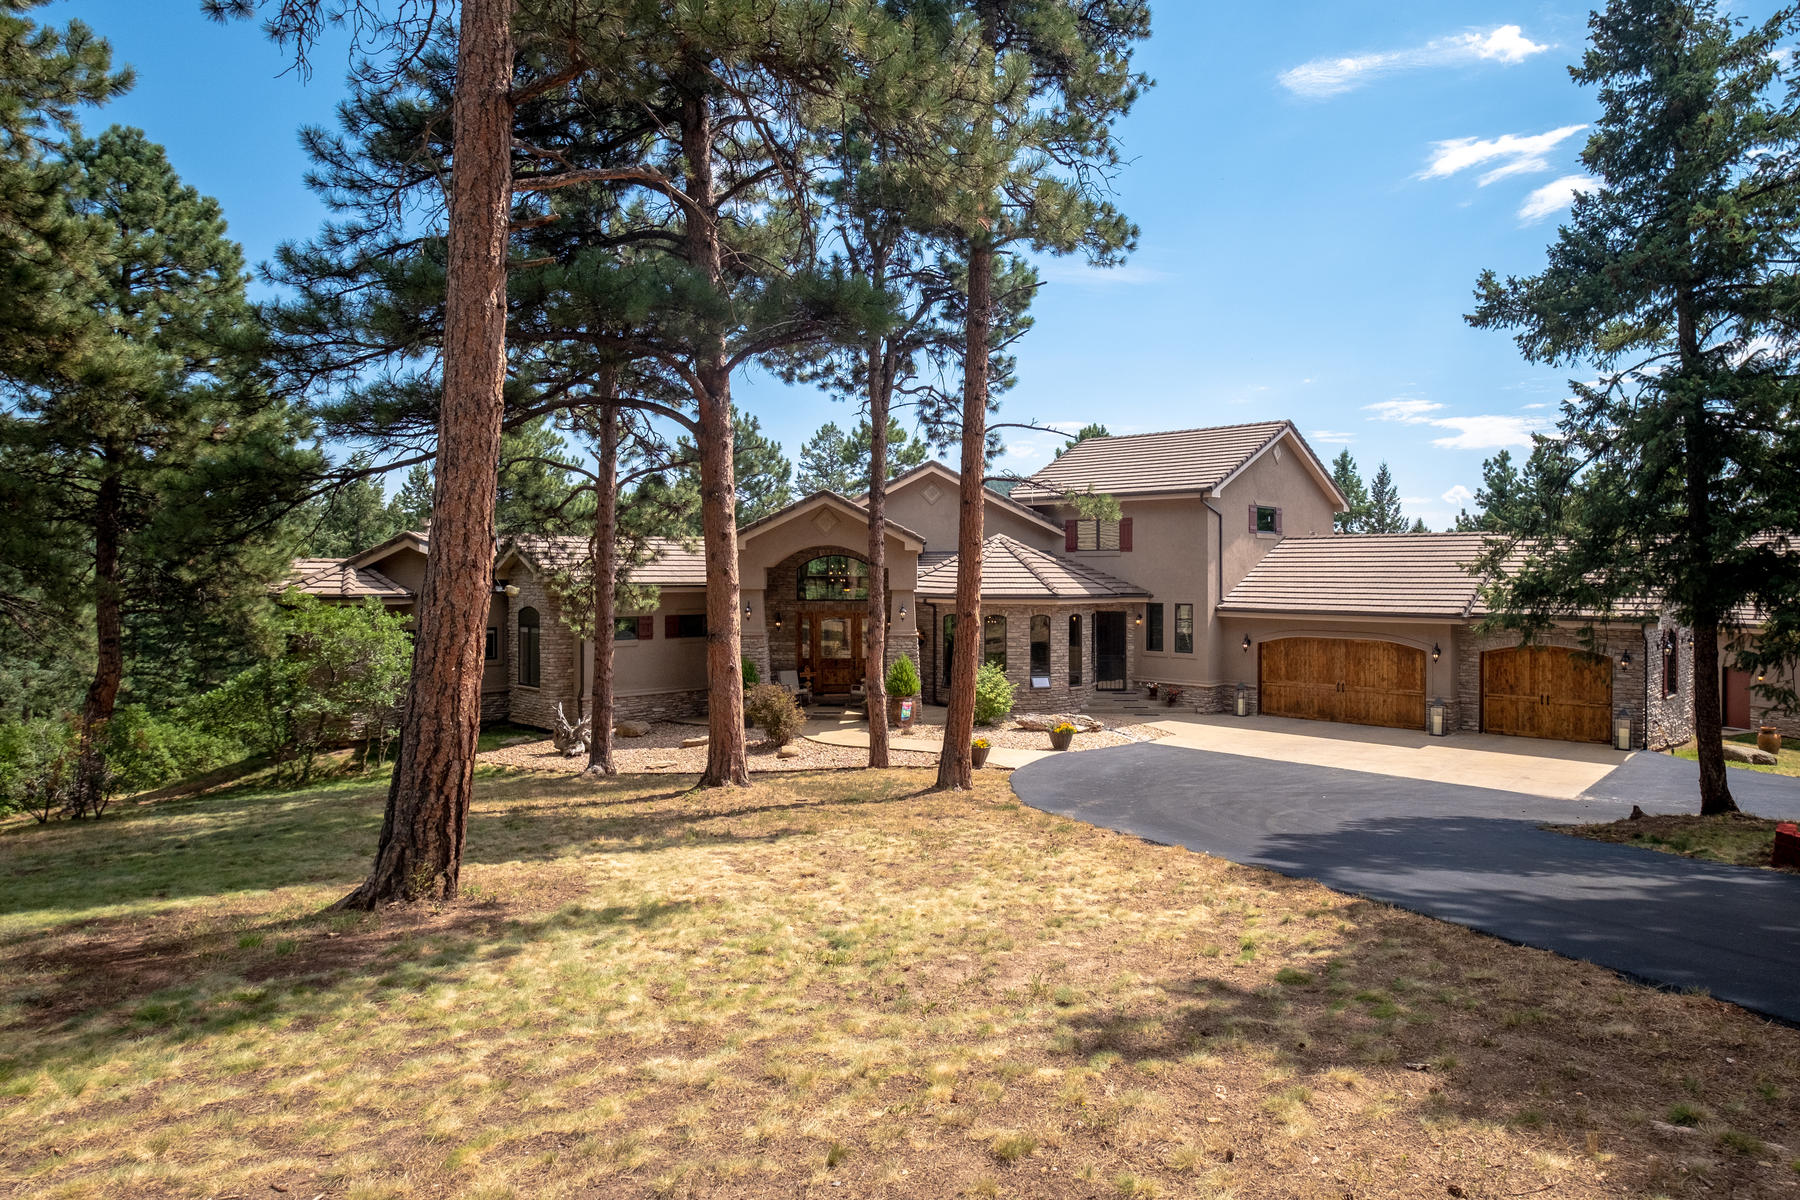 Single Family Homes for Active at 20330 Rockwood Trail Morrison, Colorado 80465 United States